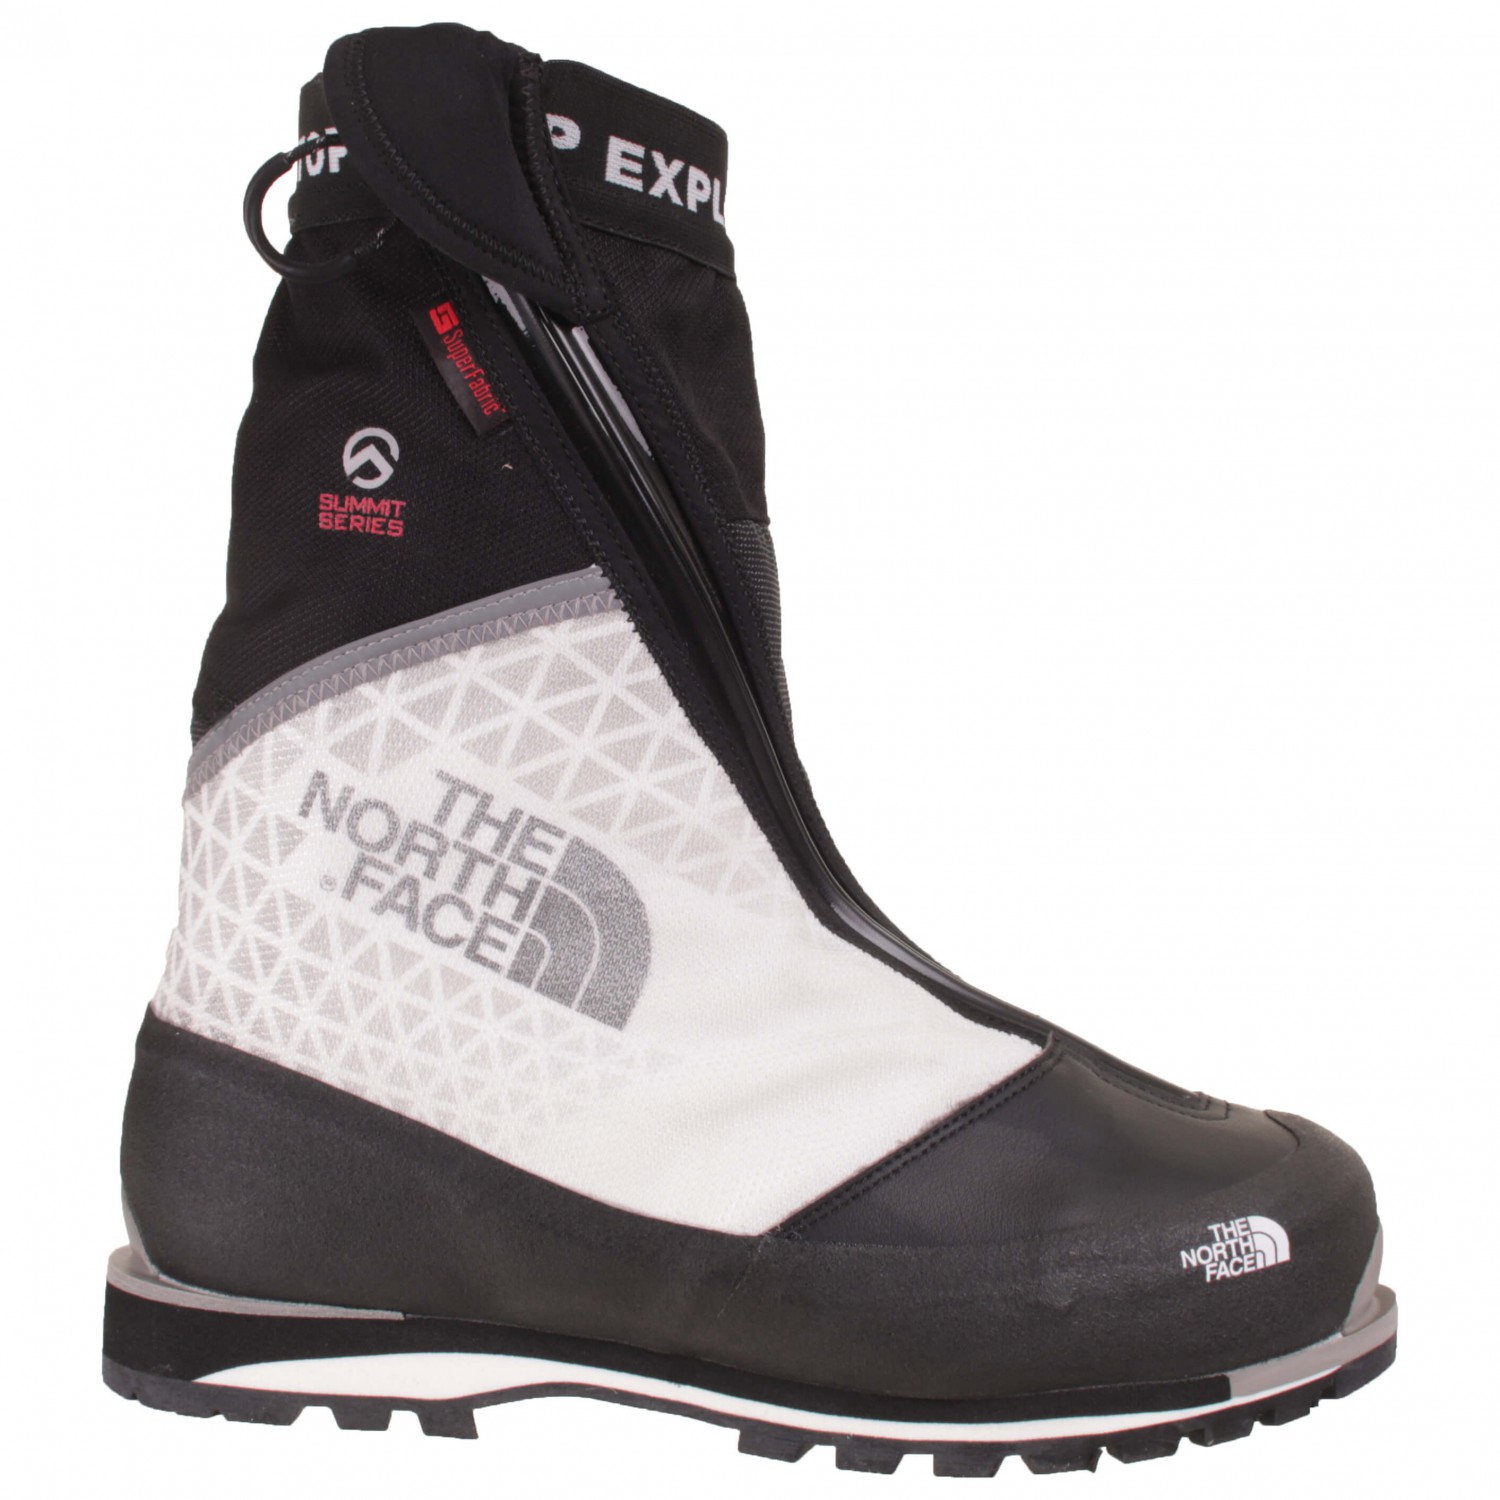 bf974d55c The North Face Verto S6K Extreme - Mountaineering Boots Men's | Buy ...